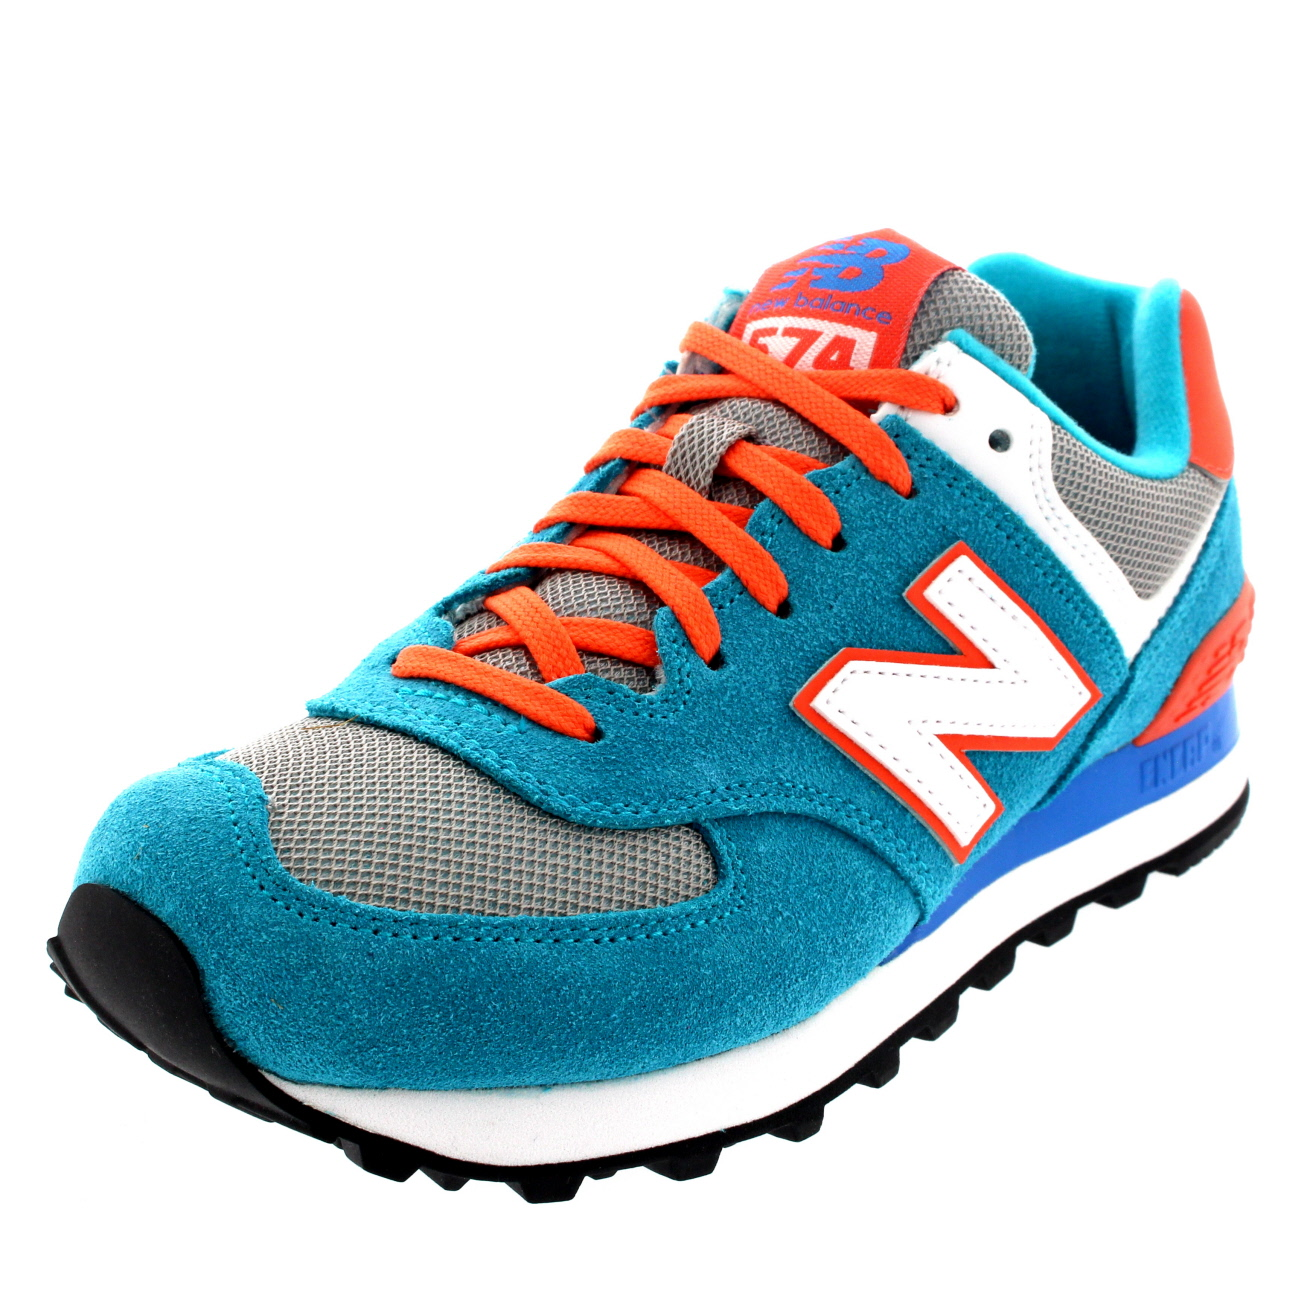 55b7787360ac Cheap n balance trainers Buy Online >OFF75% Discounted